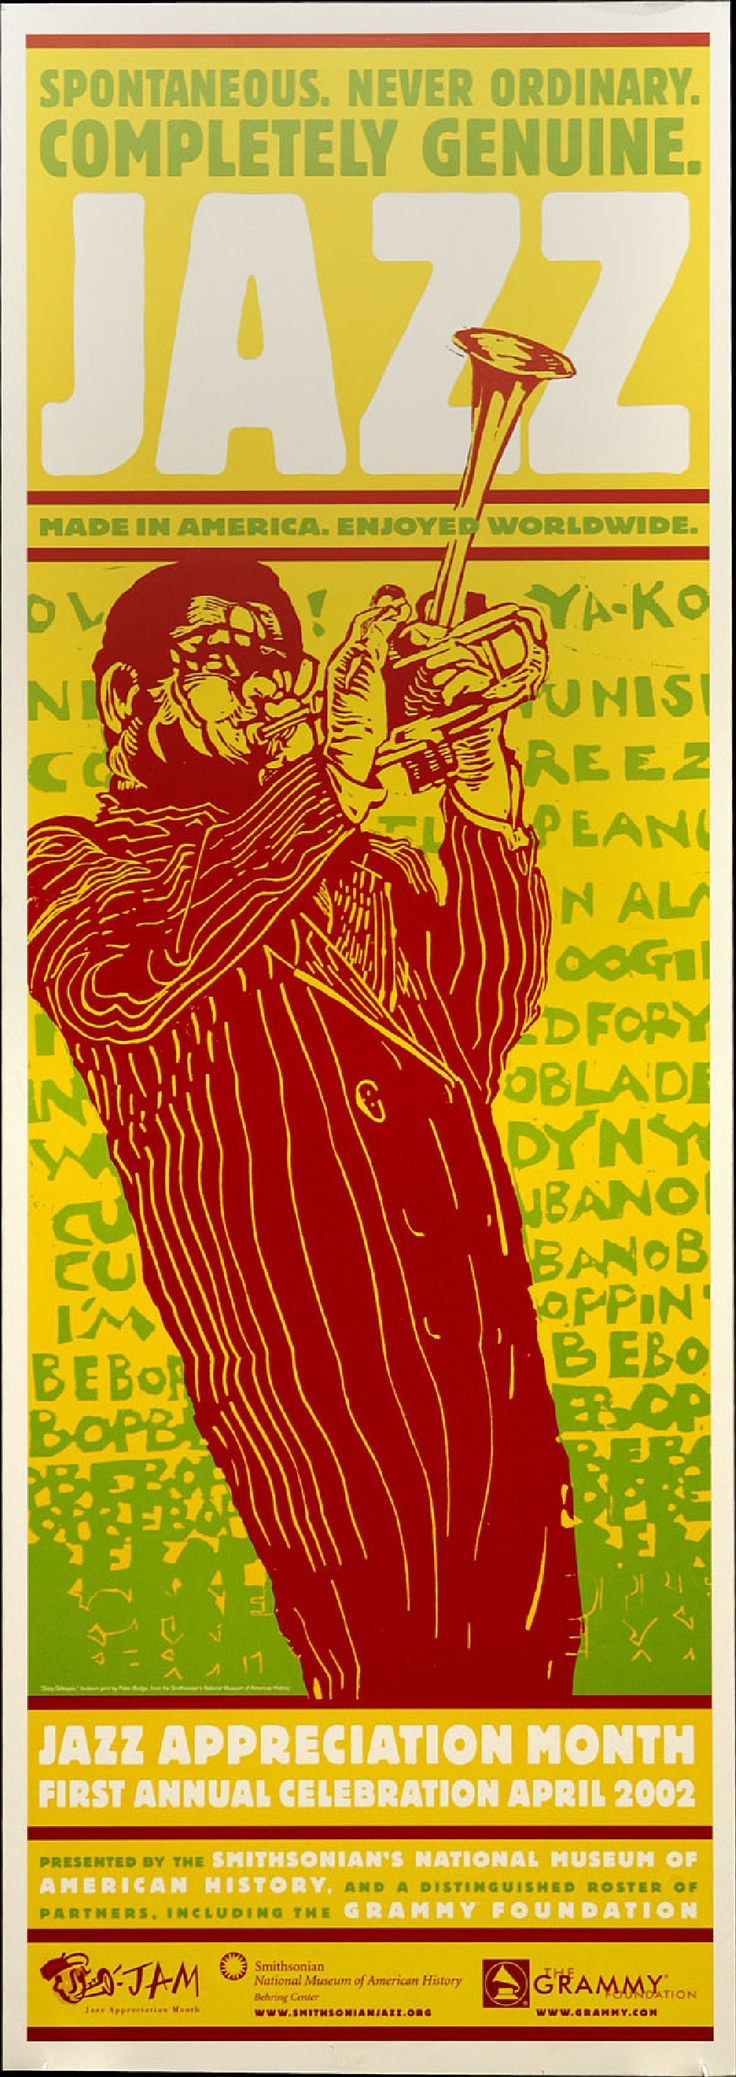 JAM 2002 Poster - Dizzy Gillespie by the artist Peter Bodge.